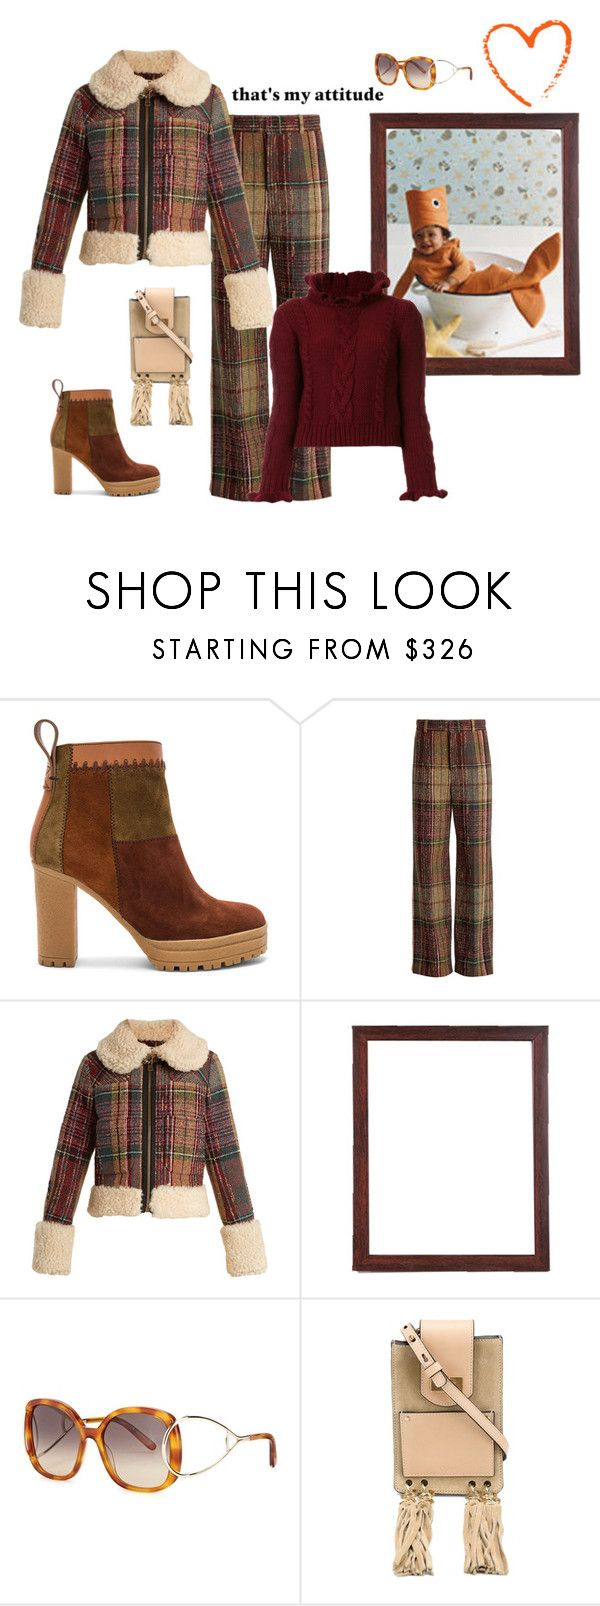 """""""Fishy Friday"""" by juliabachmann ❤ liked on Polyvore featuring See by Chloé and Chloé"""